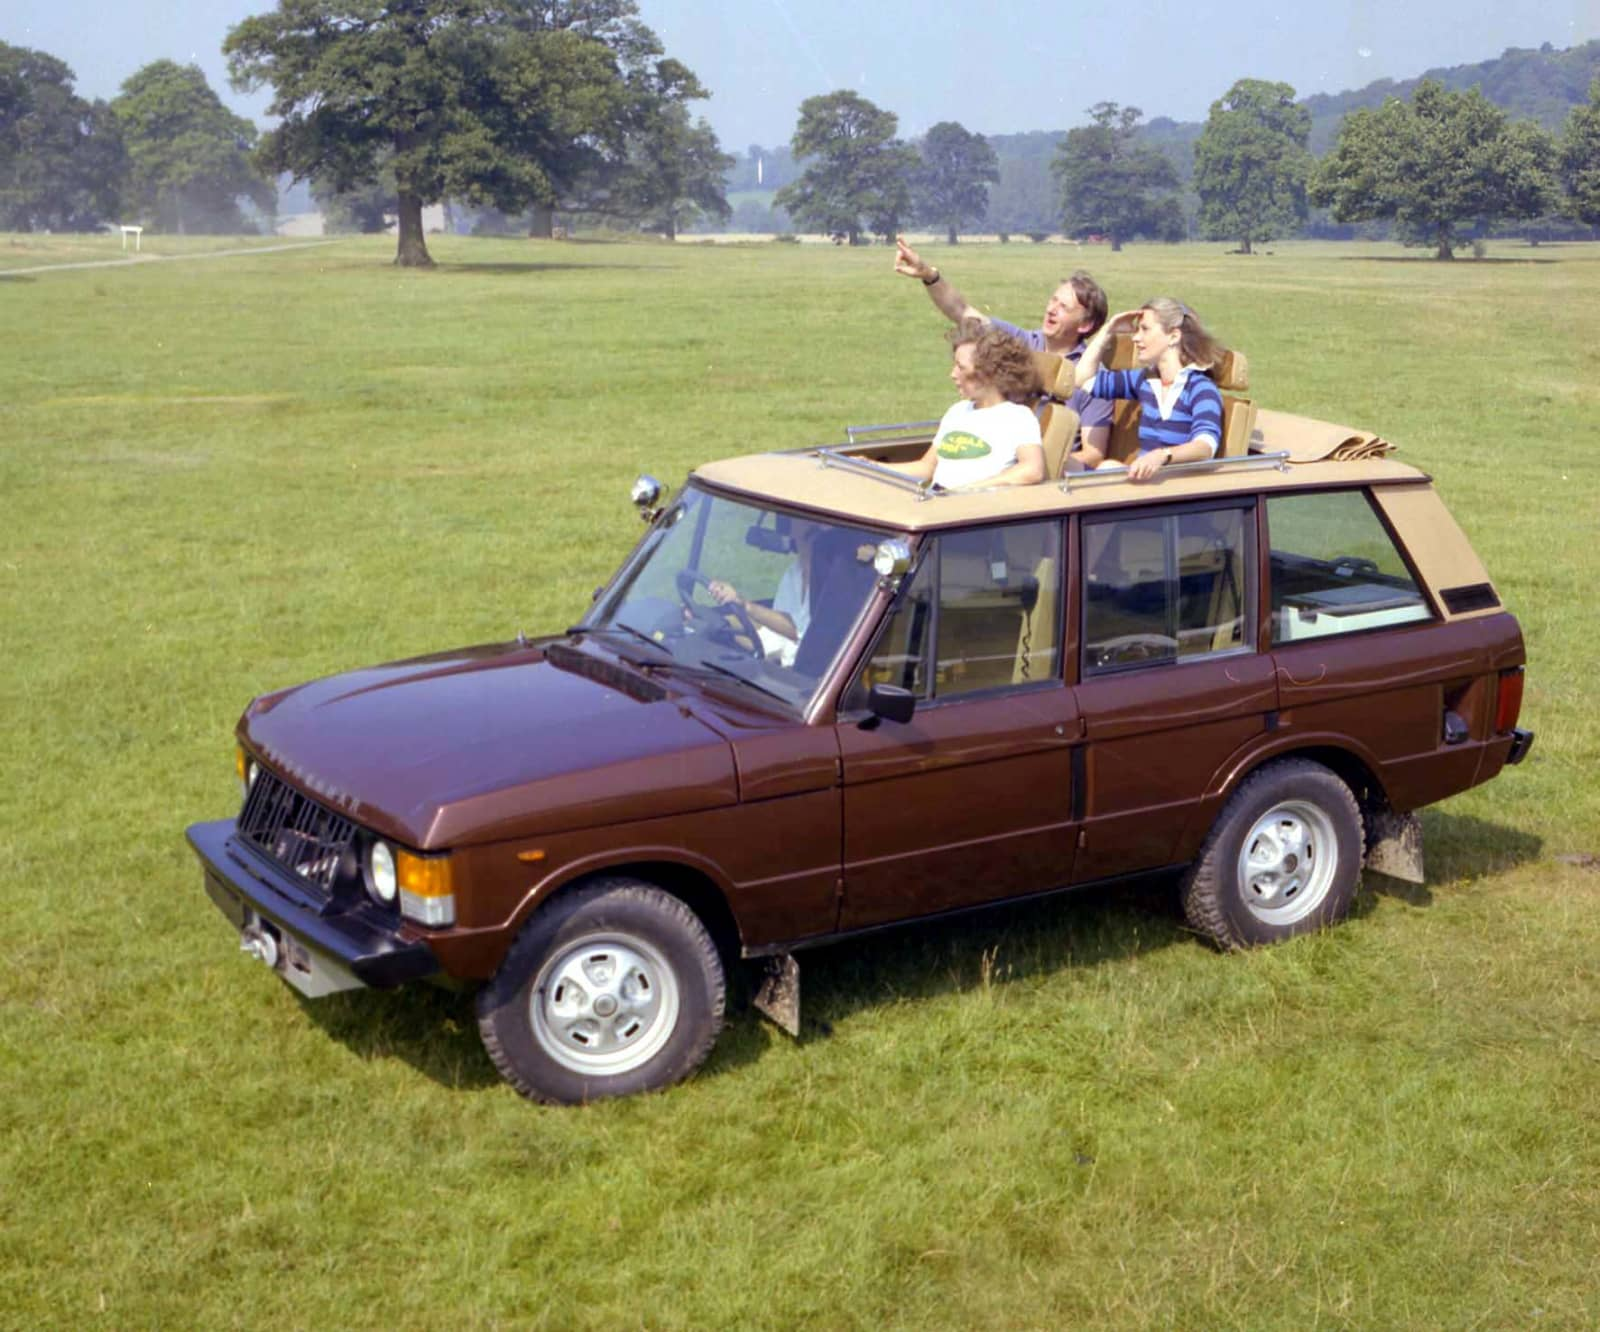 1970 Range Rover Conversion – large sun roof (company unknown)